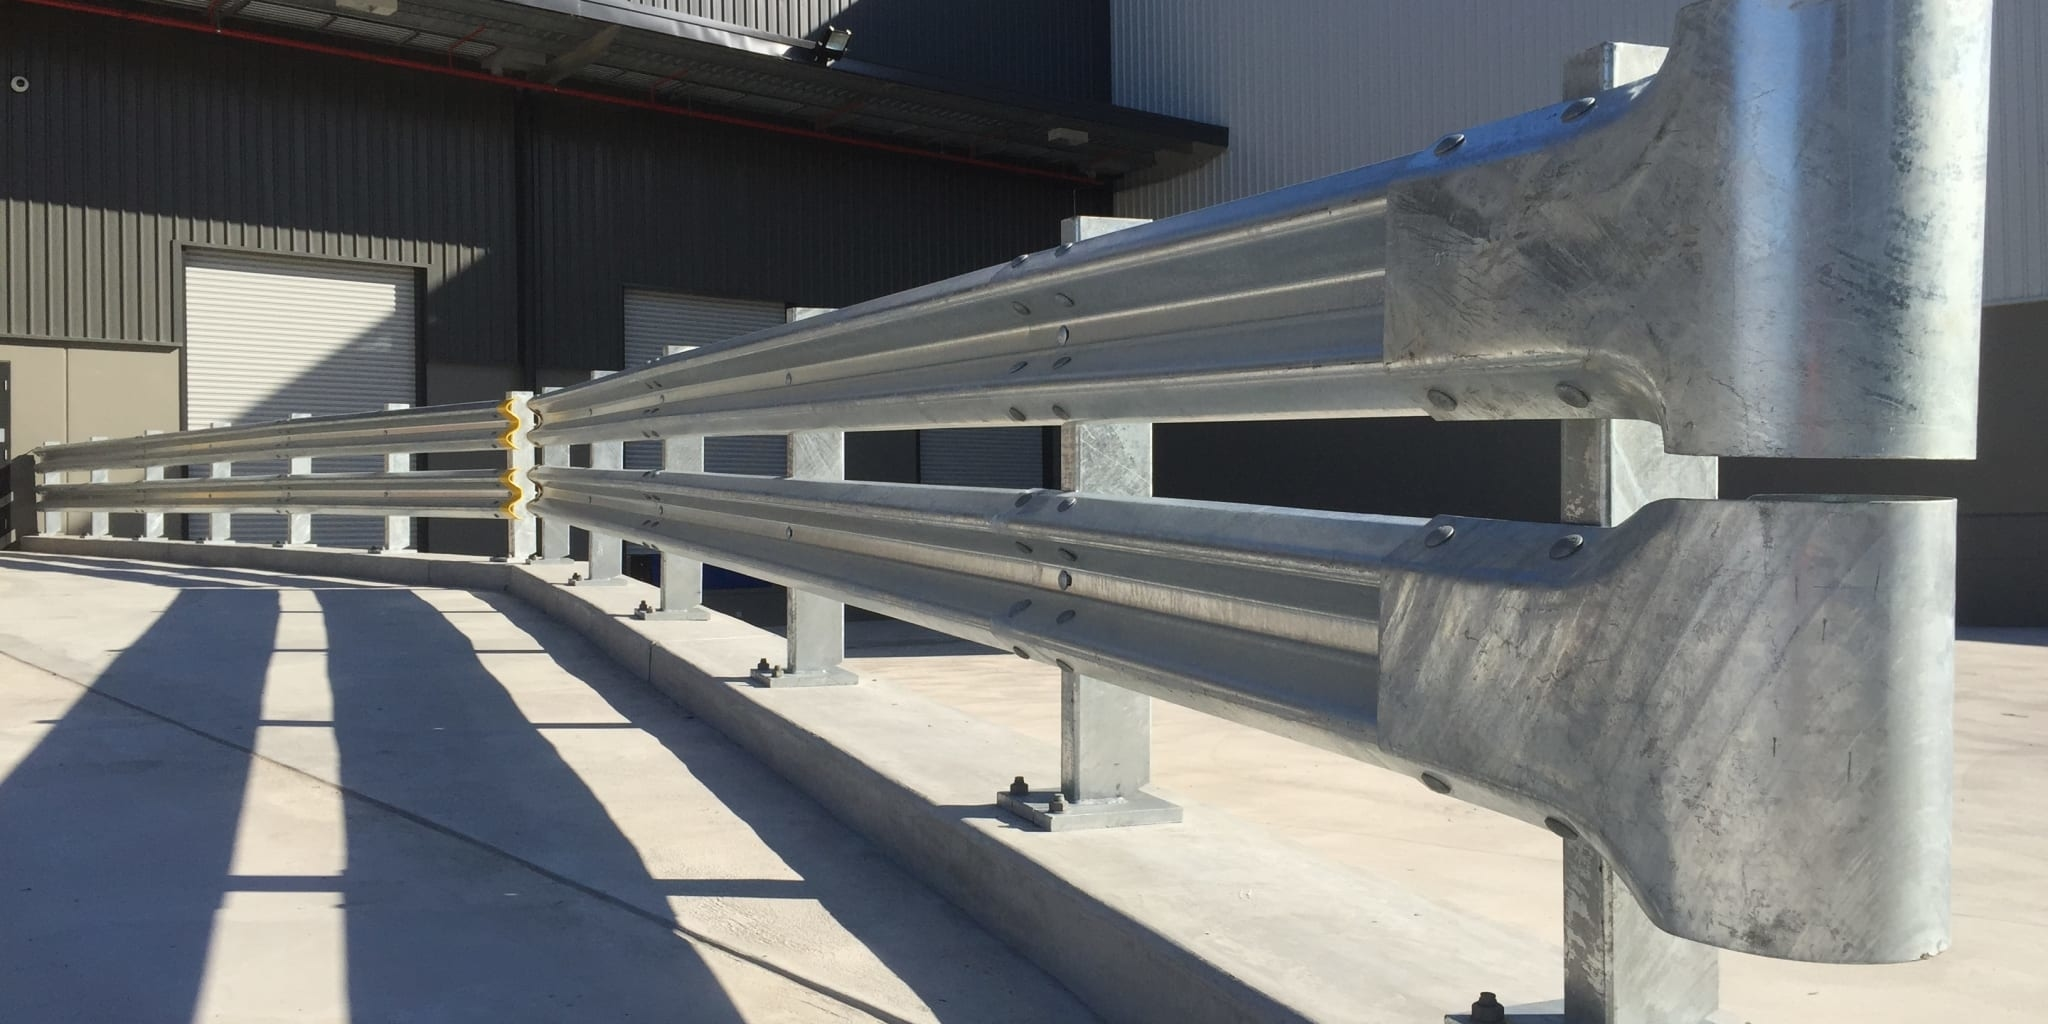 rhino stop truck guard the ideal forklift guardrail solution